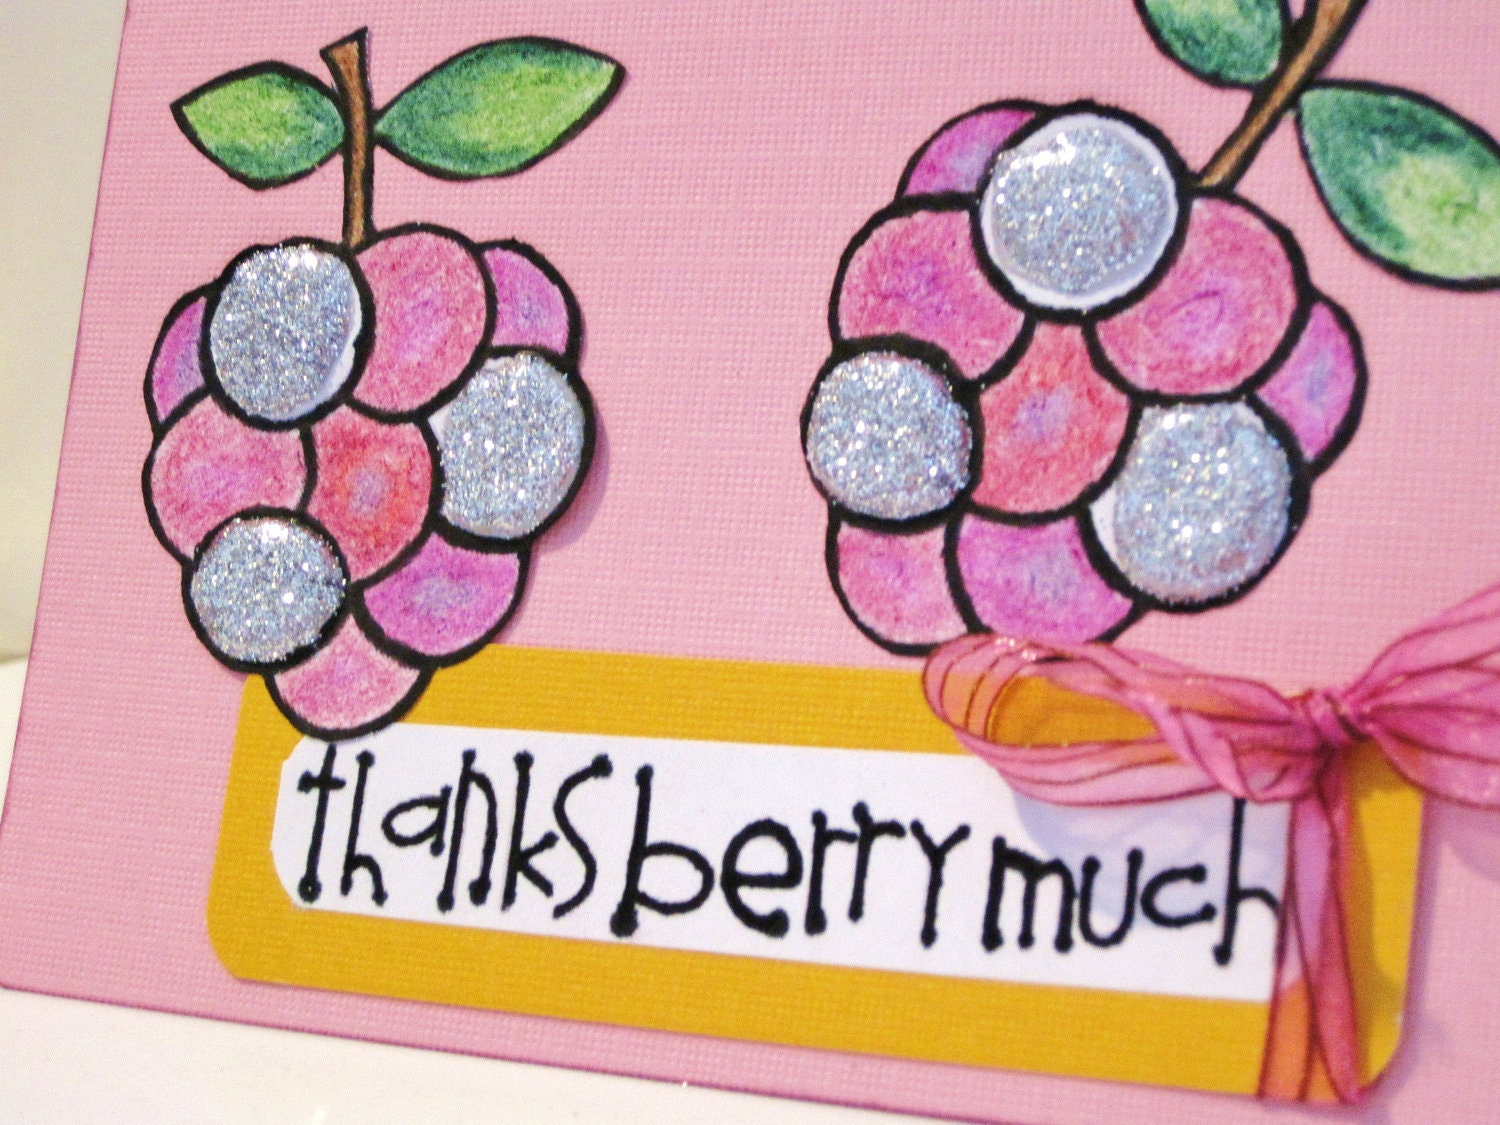 Thanks Berry Much Hand Cut and Glittered Greeting Card, Blank Inside, Pink and Purple Grapes